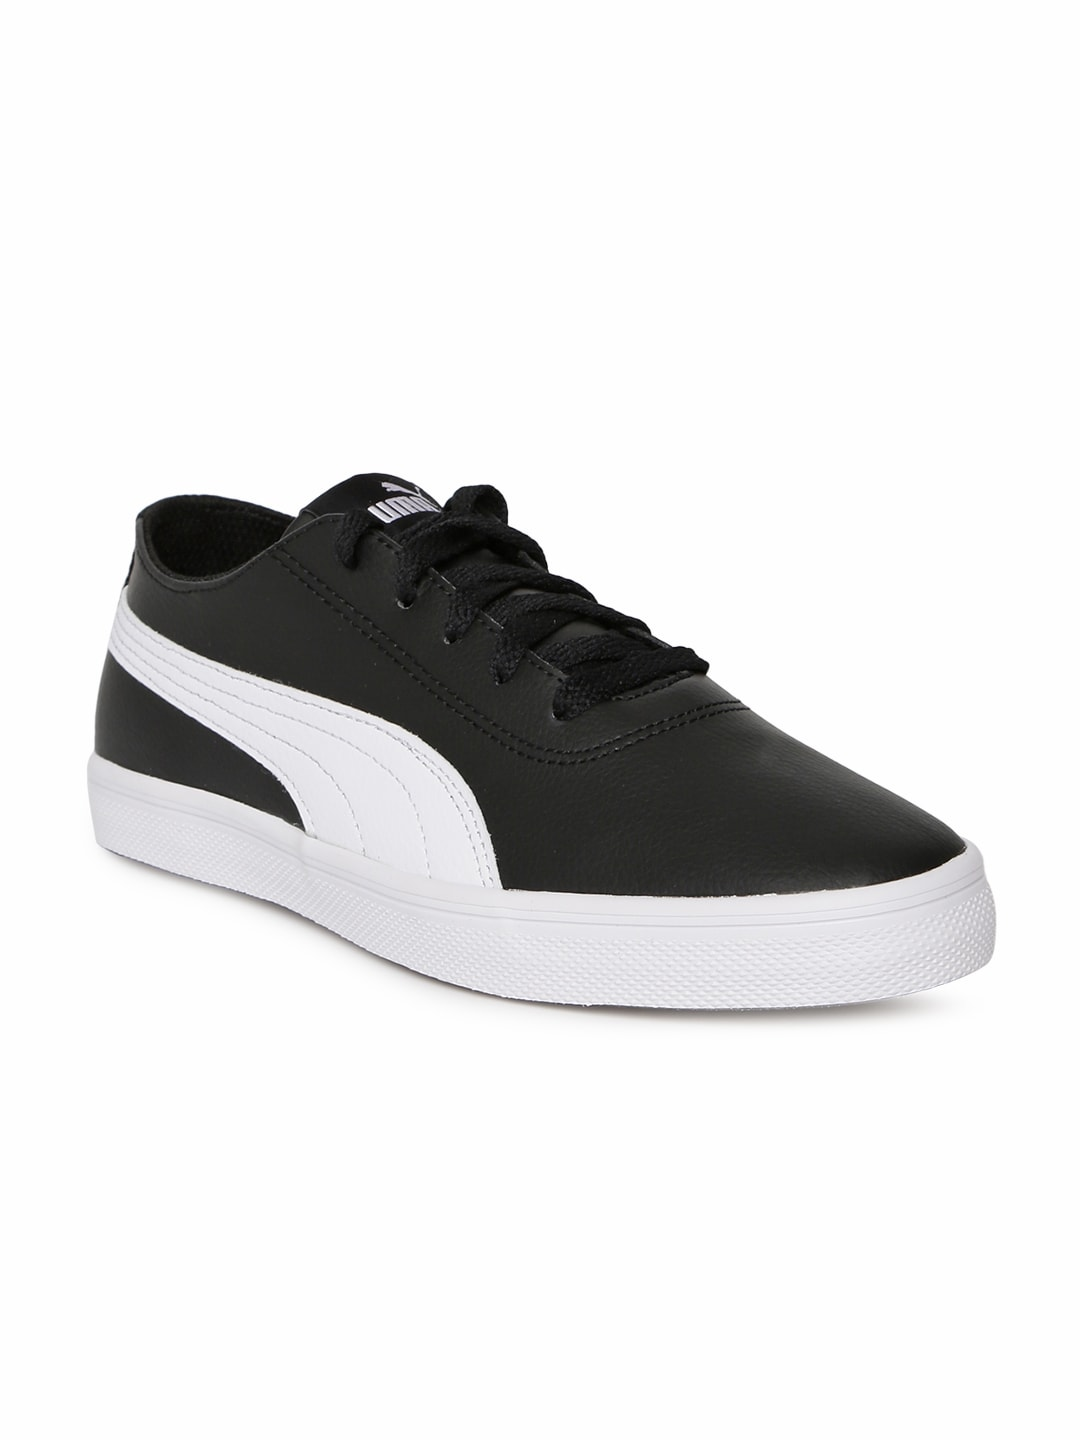 d4e74379776 Puma Shoes - Buy Puma Shoes for Men   Women Online in India